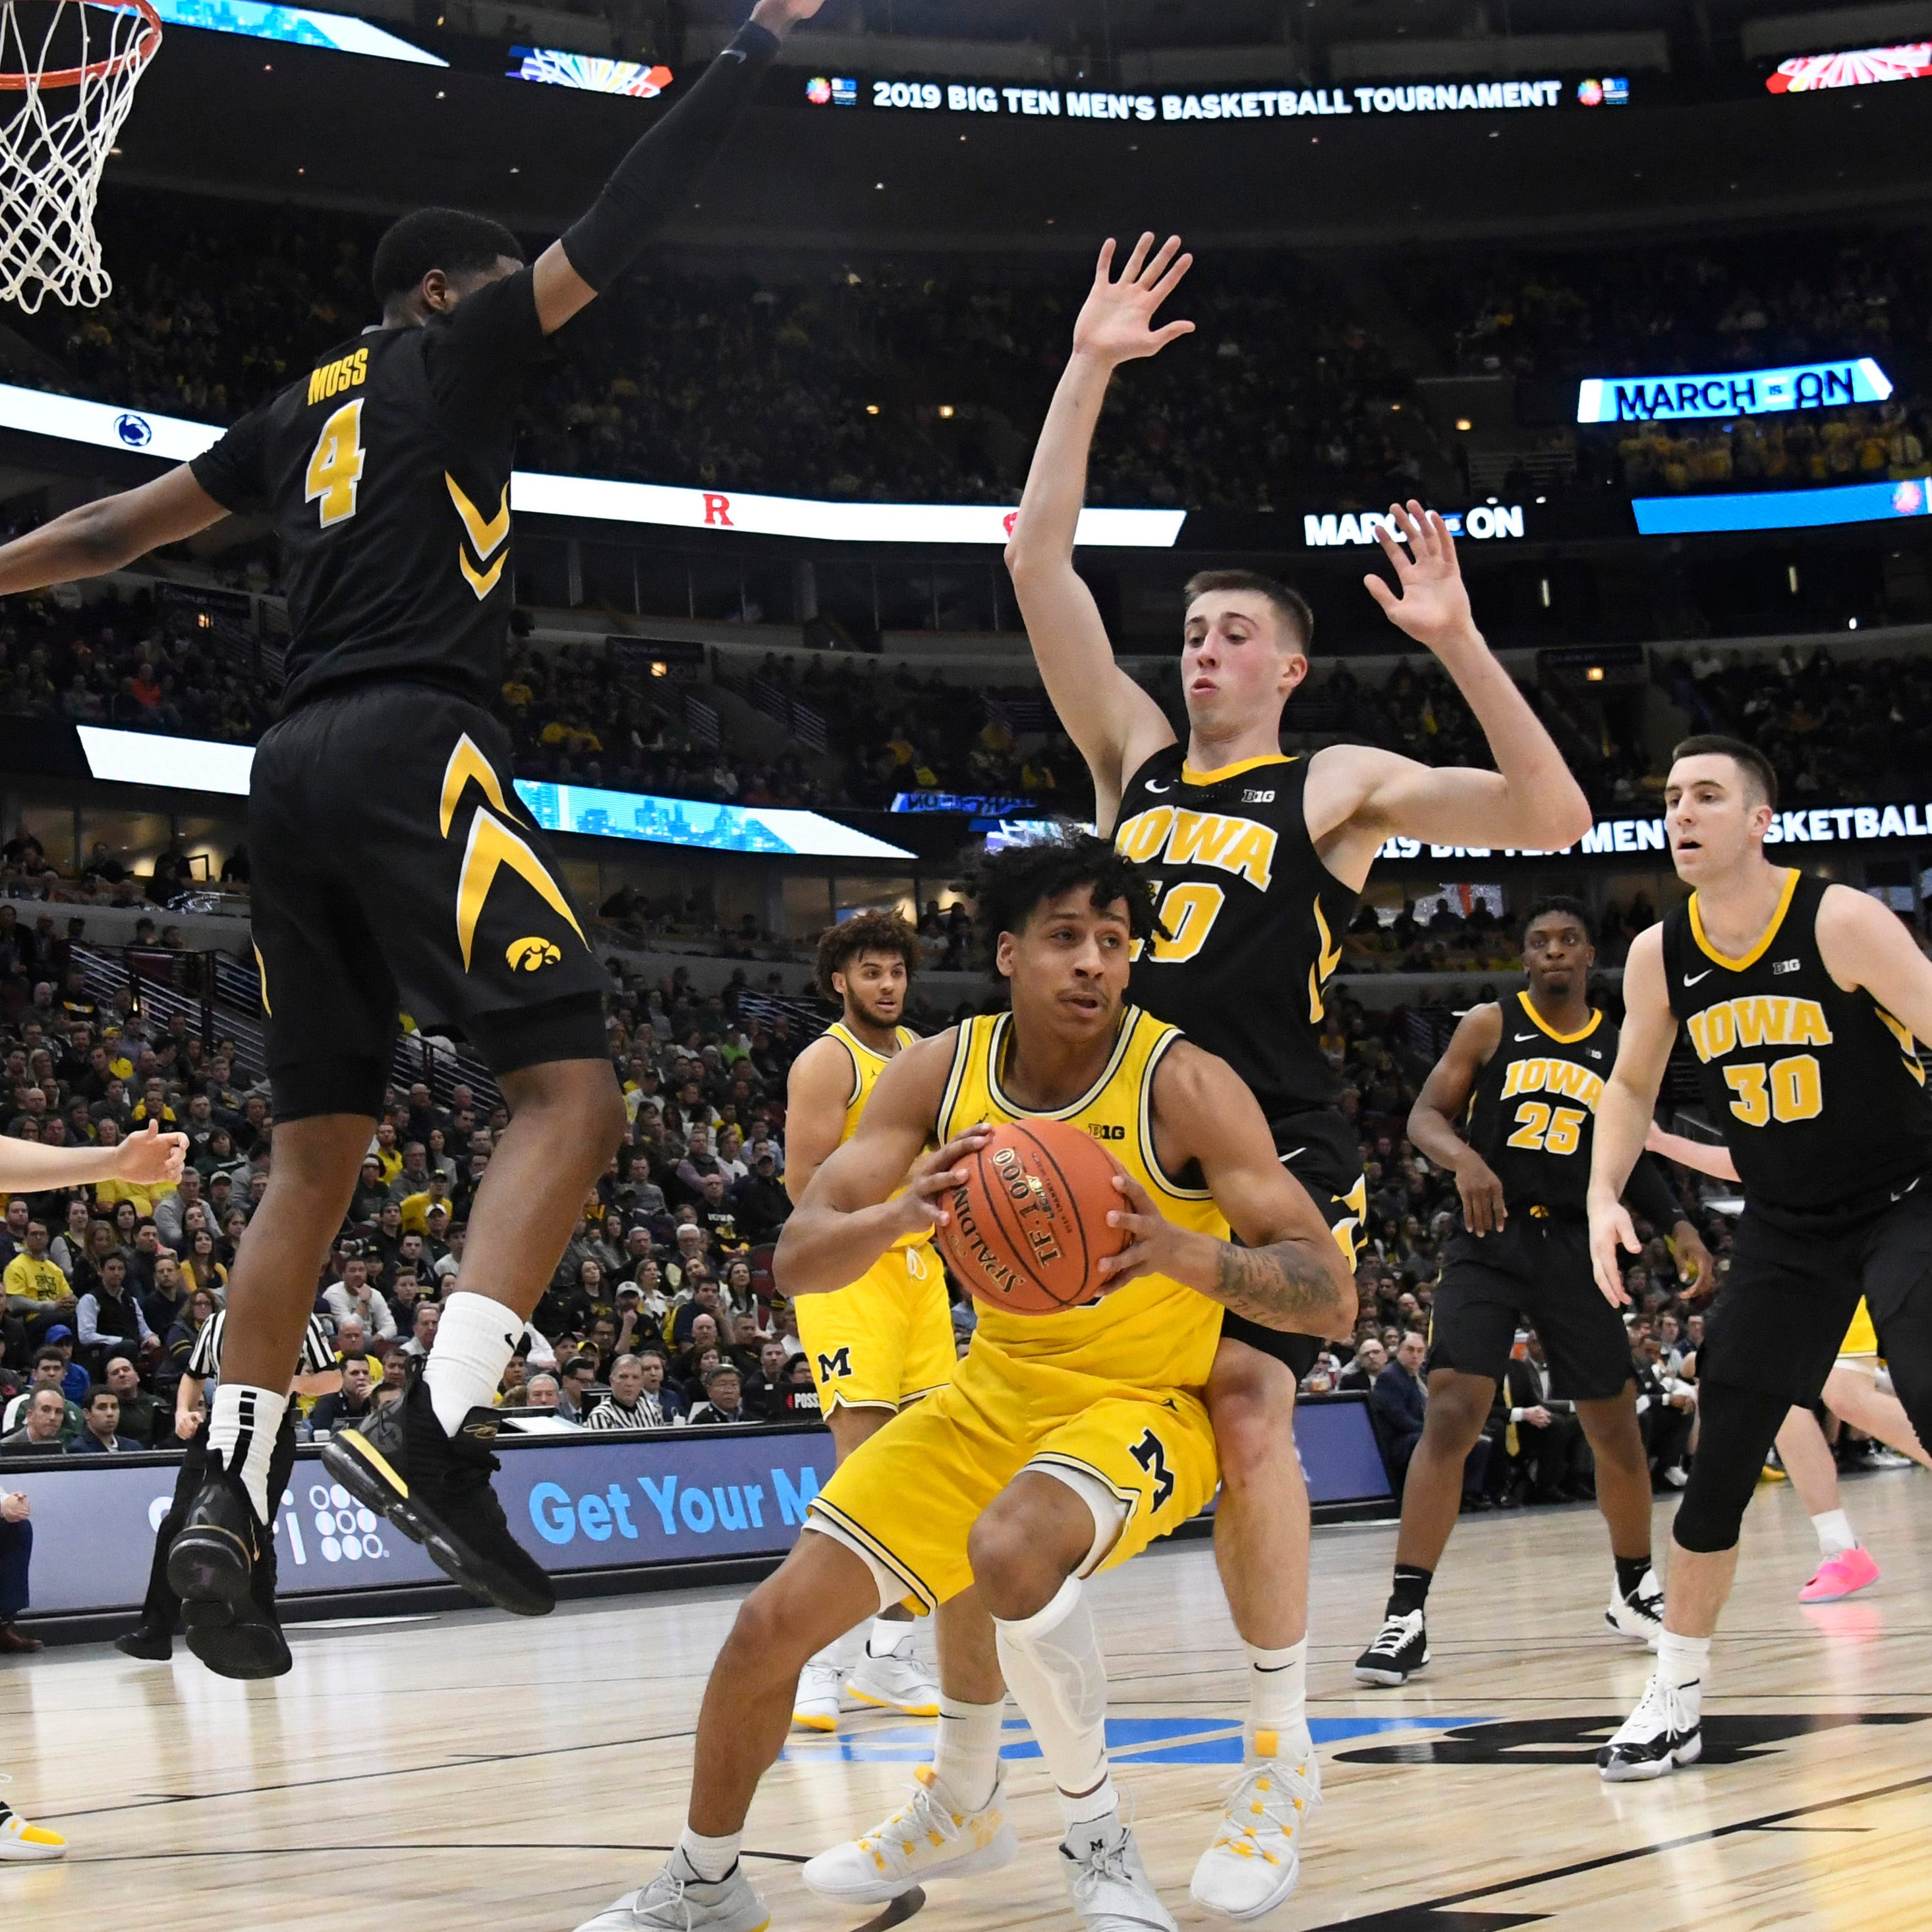 Leistikow: Jordan Bohannon, Hawkeyes learn important lesson entering NCAA tourney